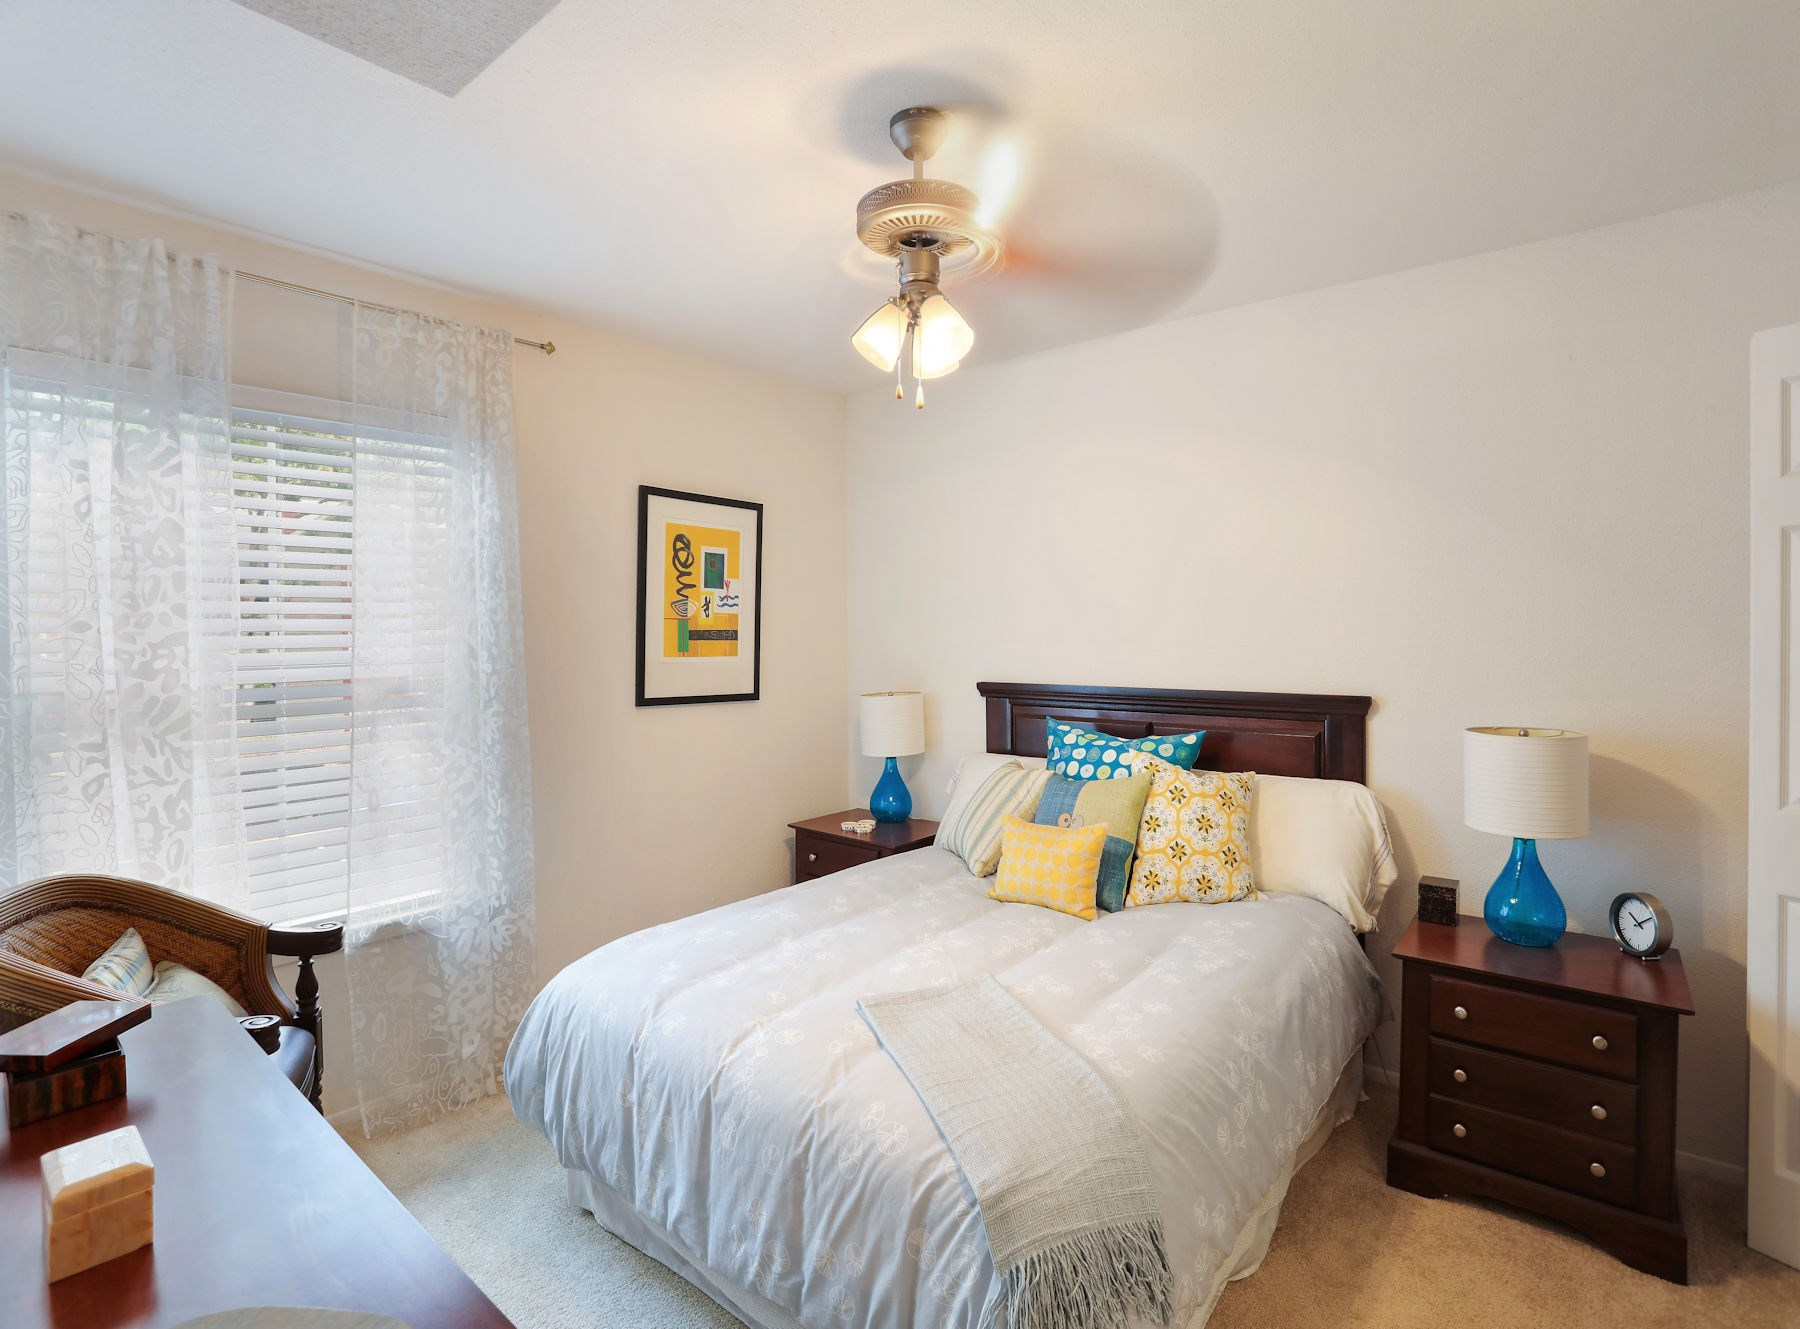 Model Bedroom with Carpet,Large Window, and Ceiling Fan.